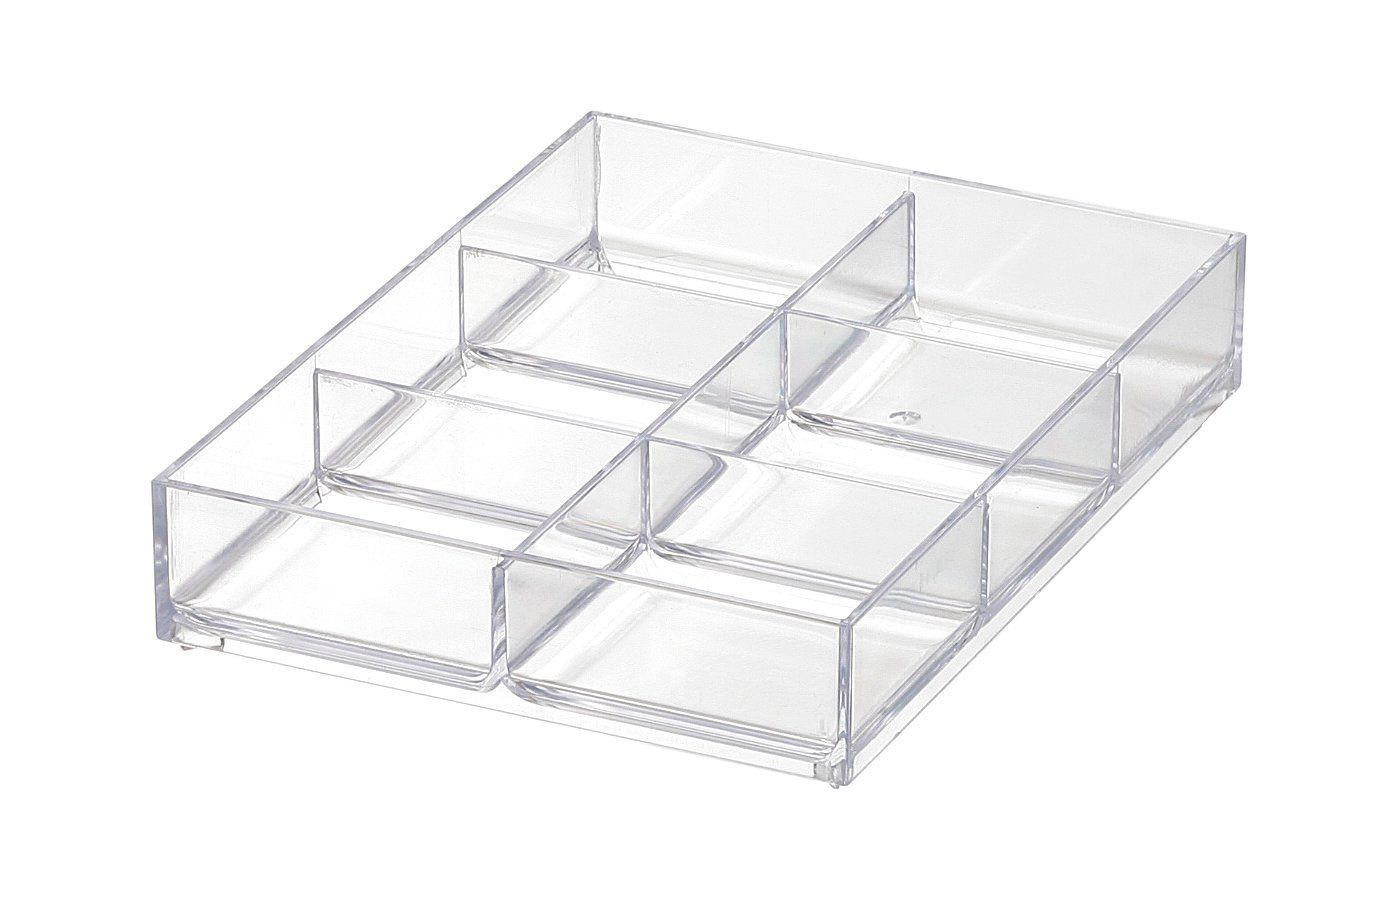 Like It Mx T11 Drawer Organizer Tray Mini 6 Compartment Clear You Can Get Additional Details In 2020 Tray Organization Craft Storage Box Storage Room Organization